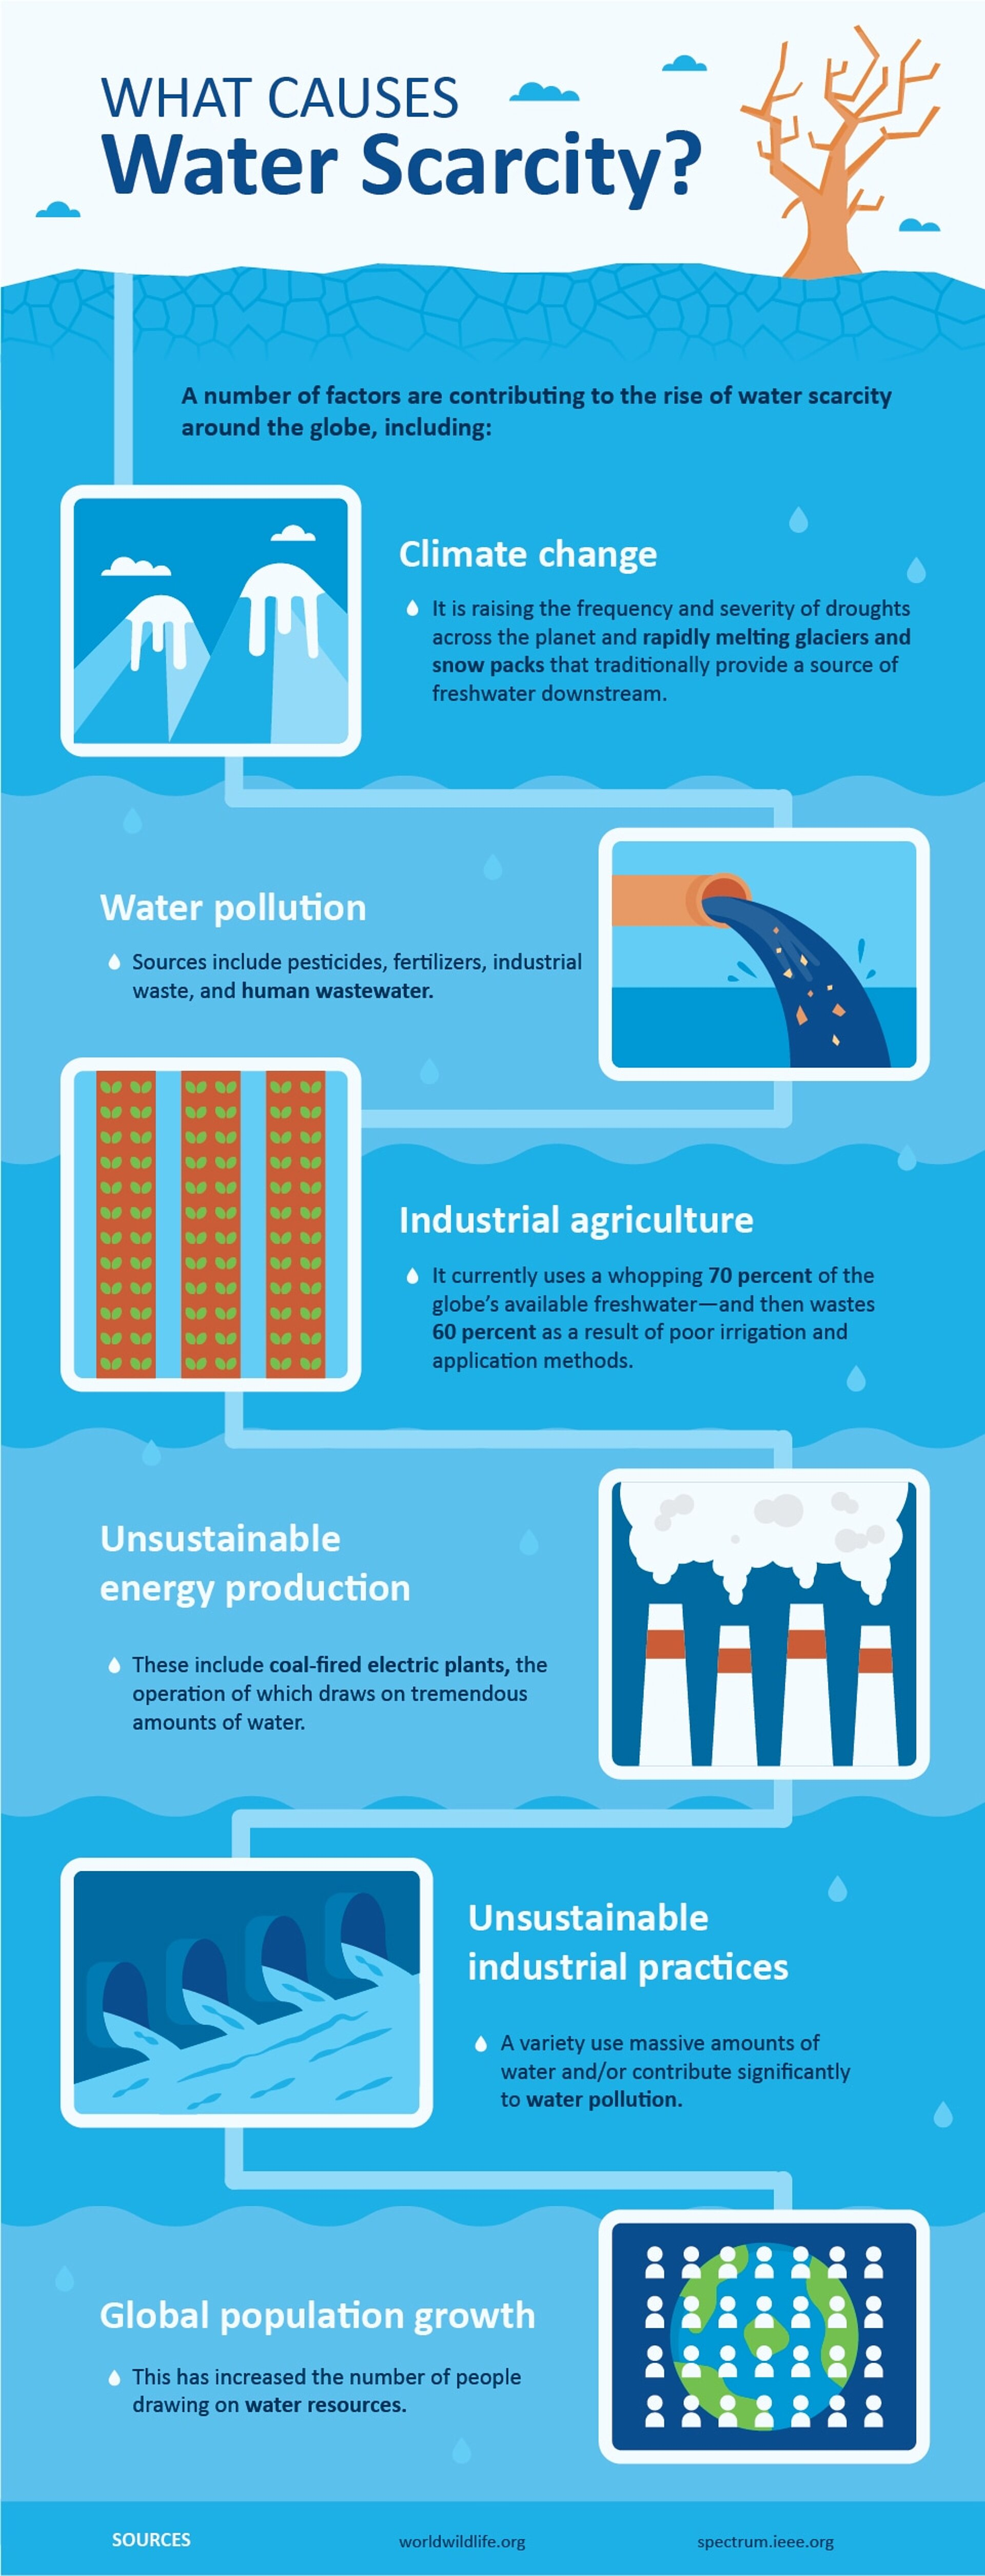 What causes water scarcity